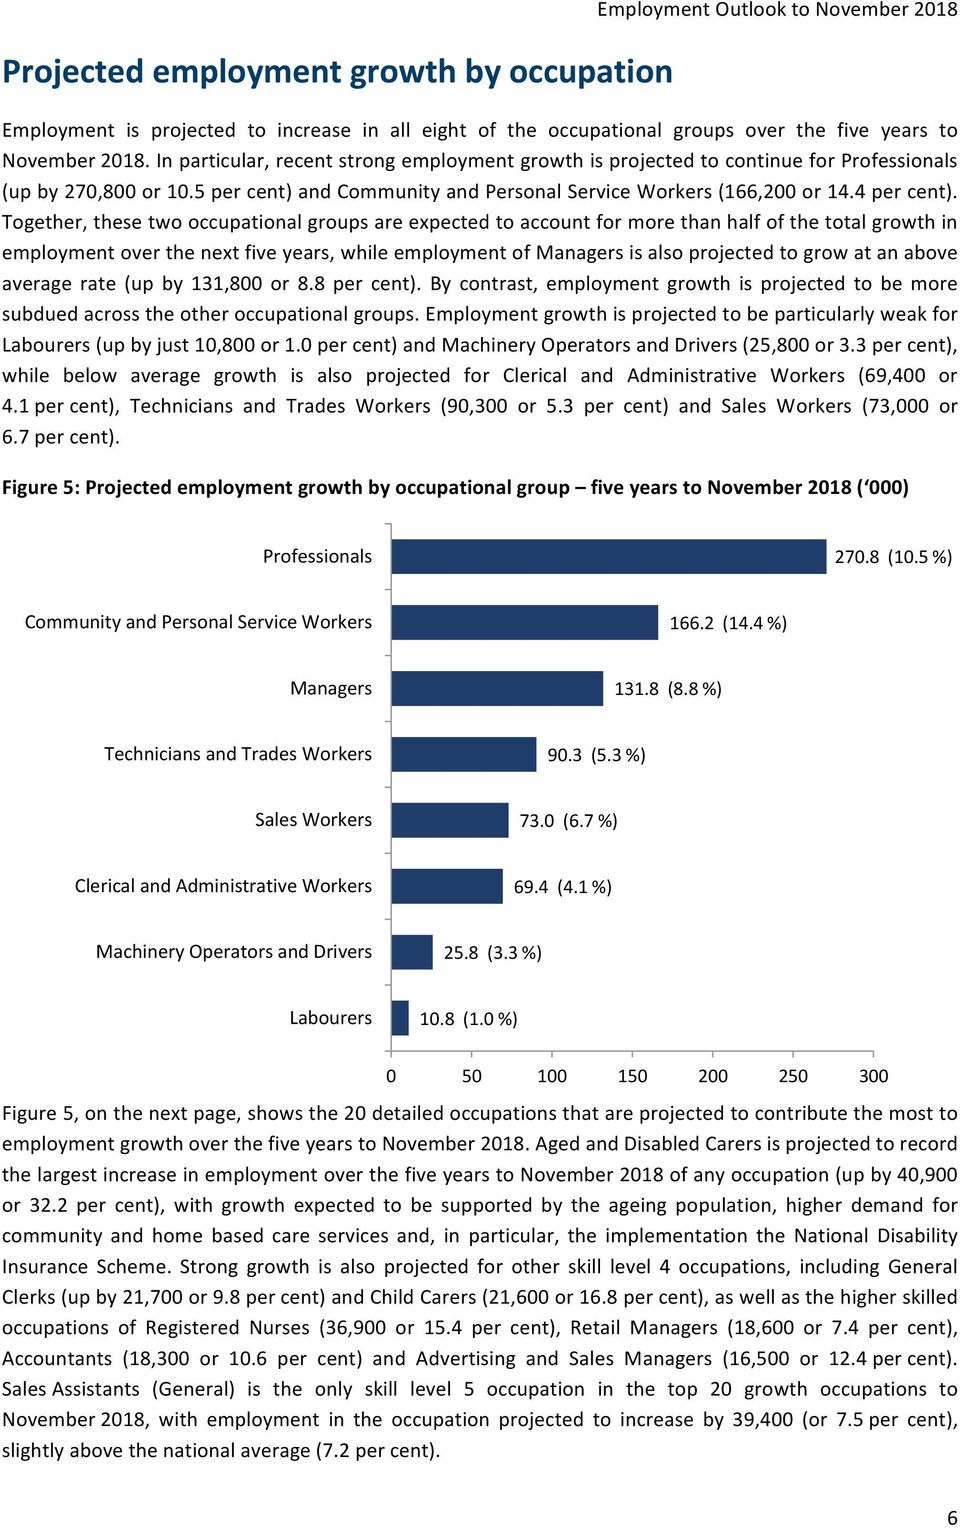 Together, these two occupational groups are expected to account for more than half of the total growth in employment over the next five years, while employment of Managers is also projected to grow